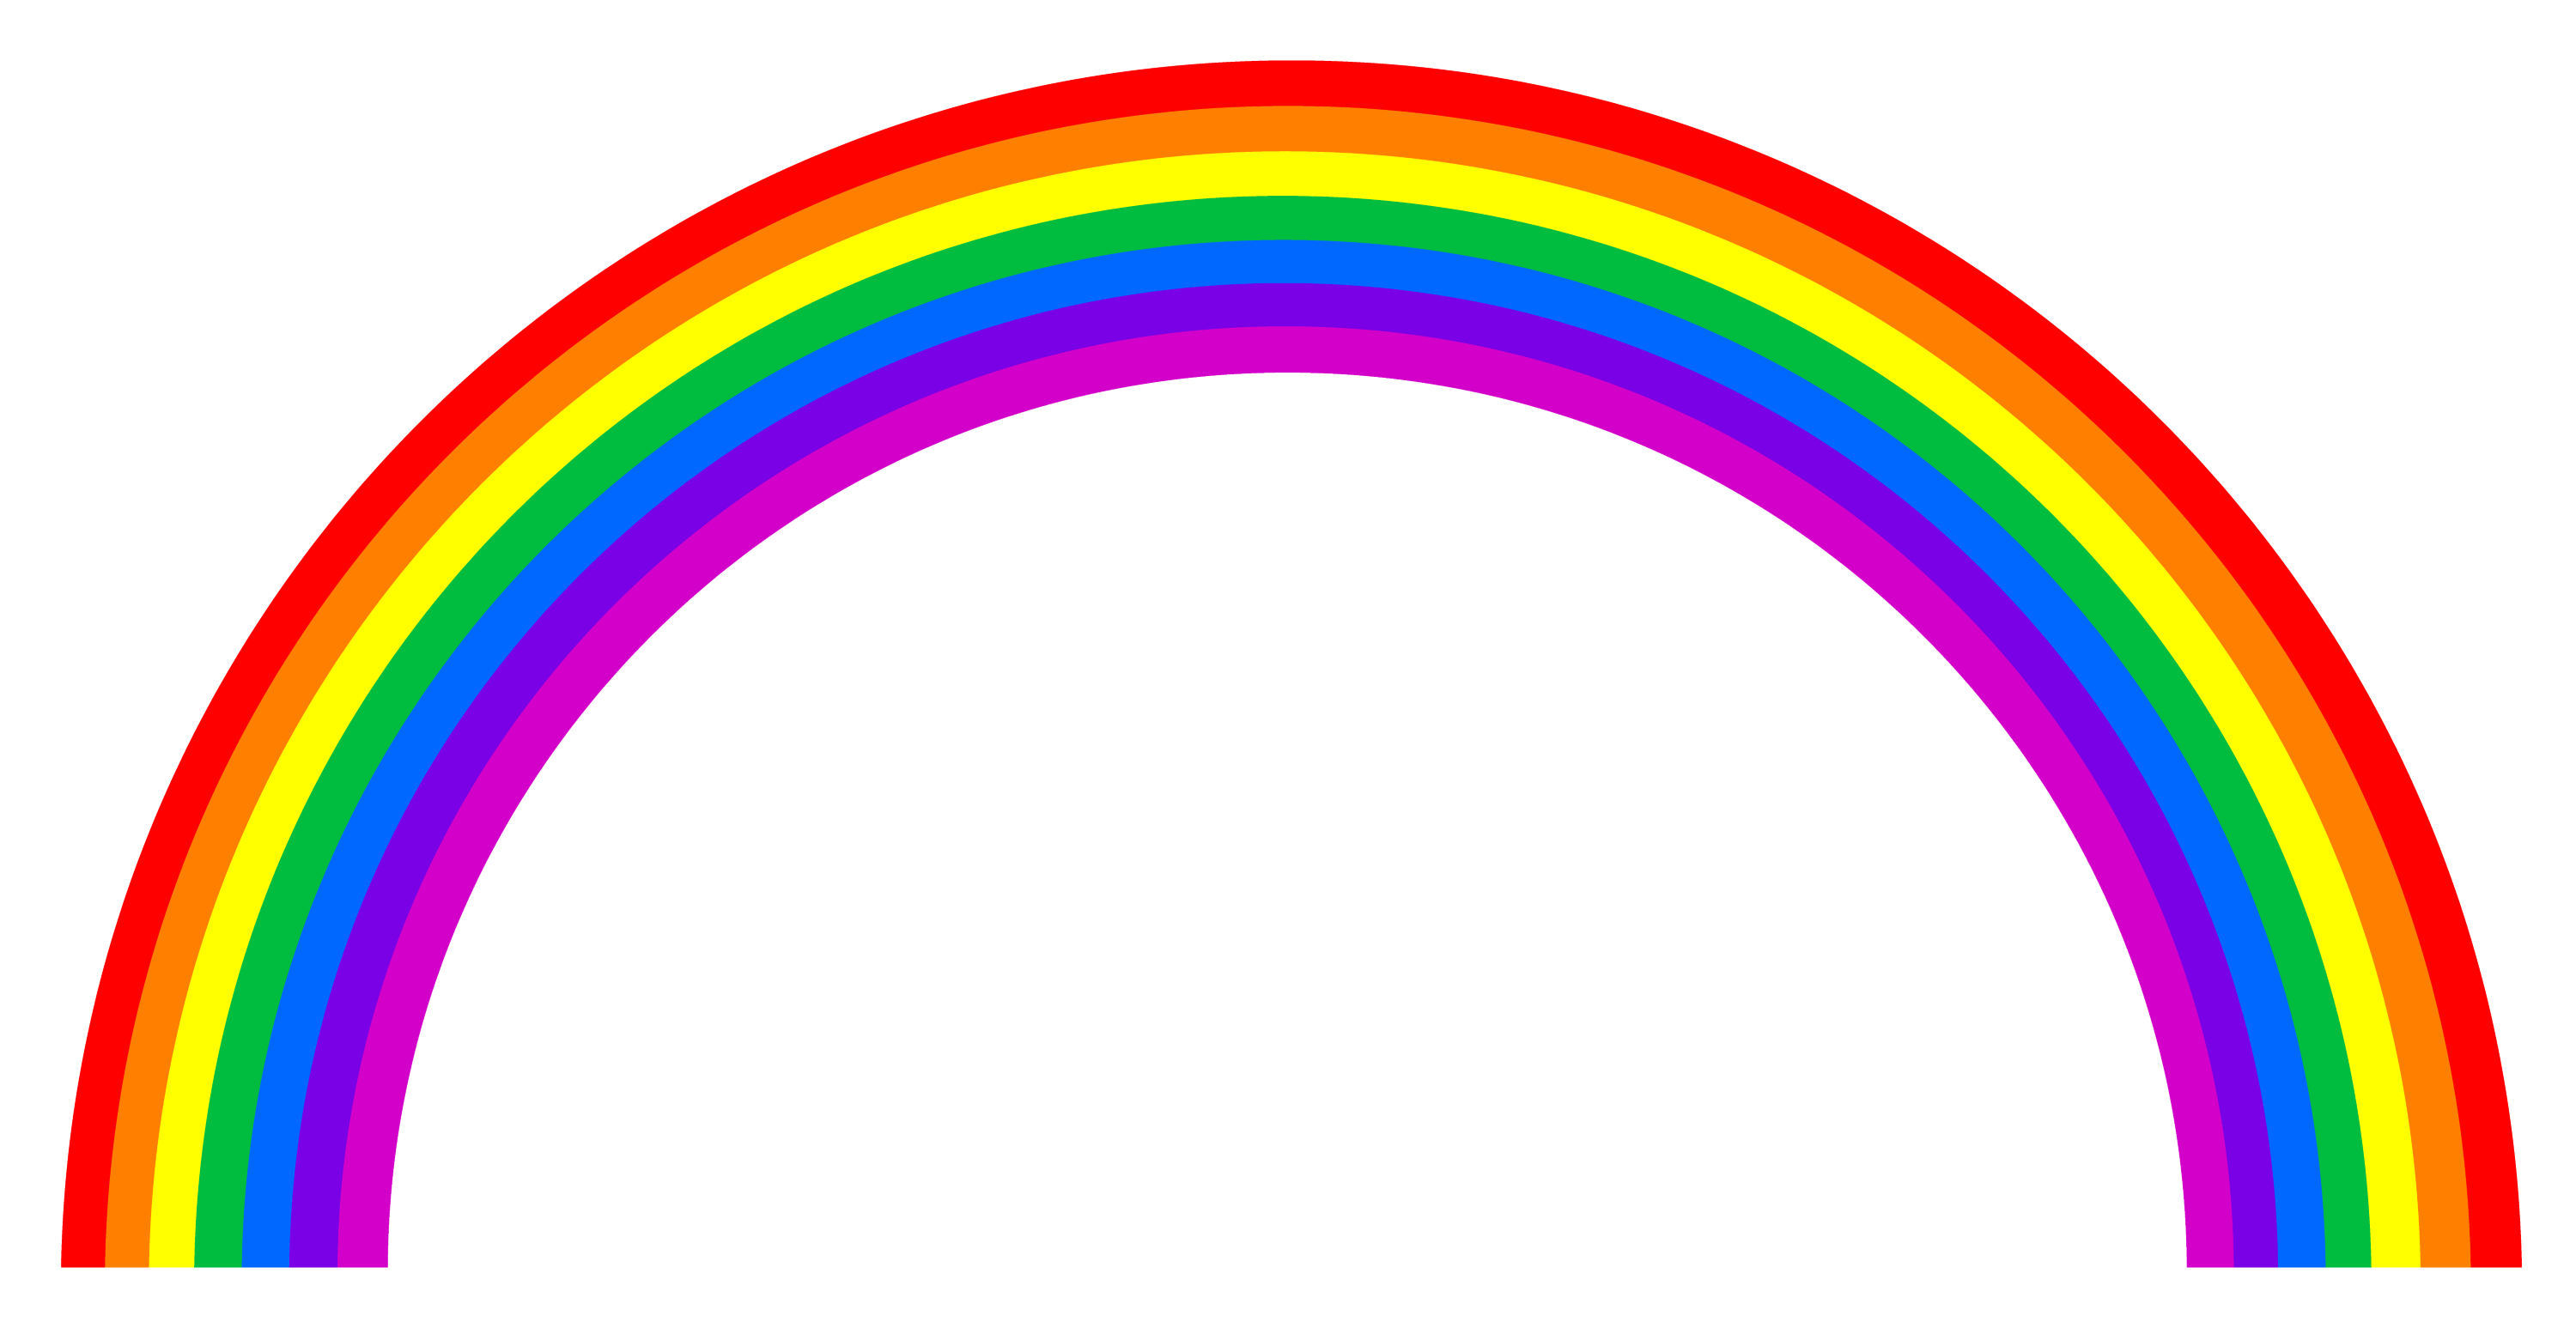 Simple colorful rainbow arc